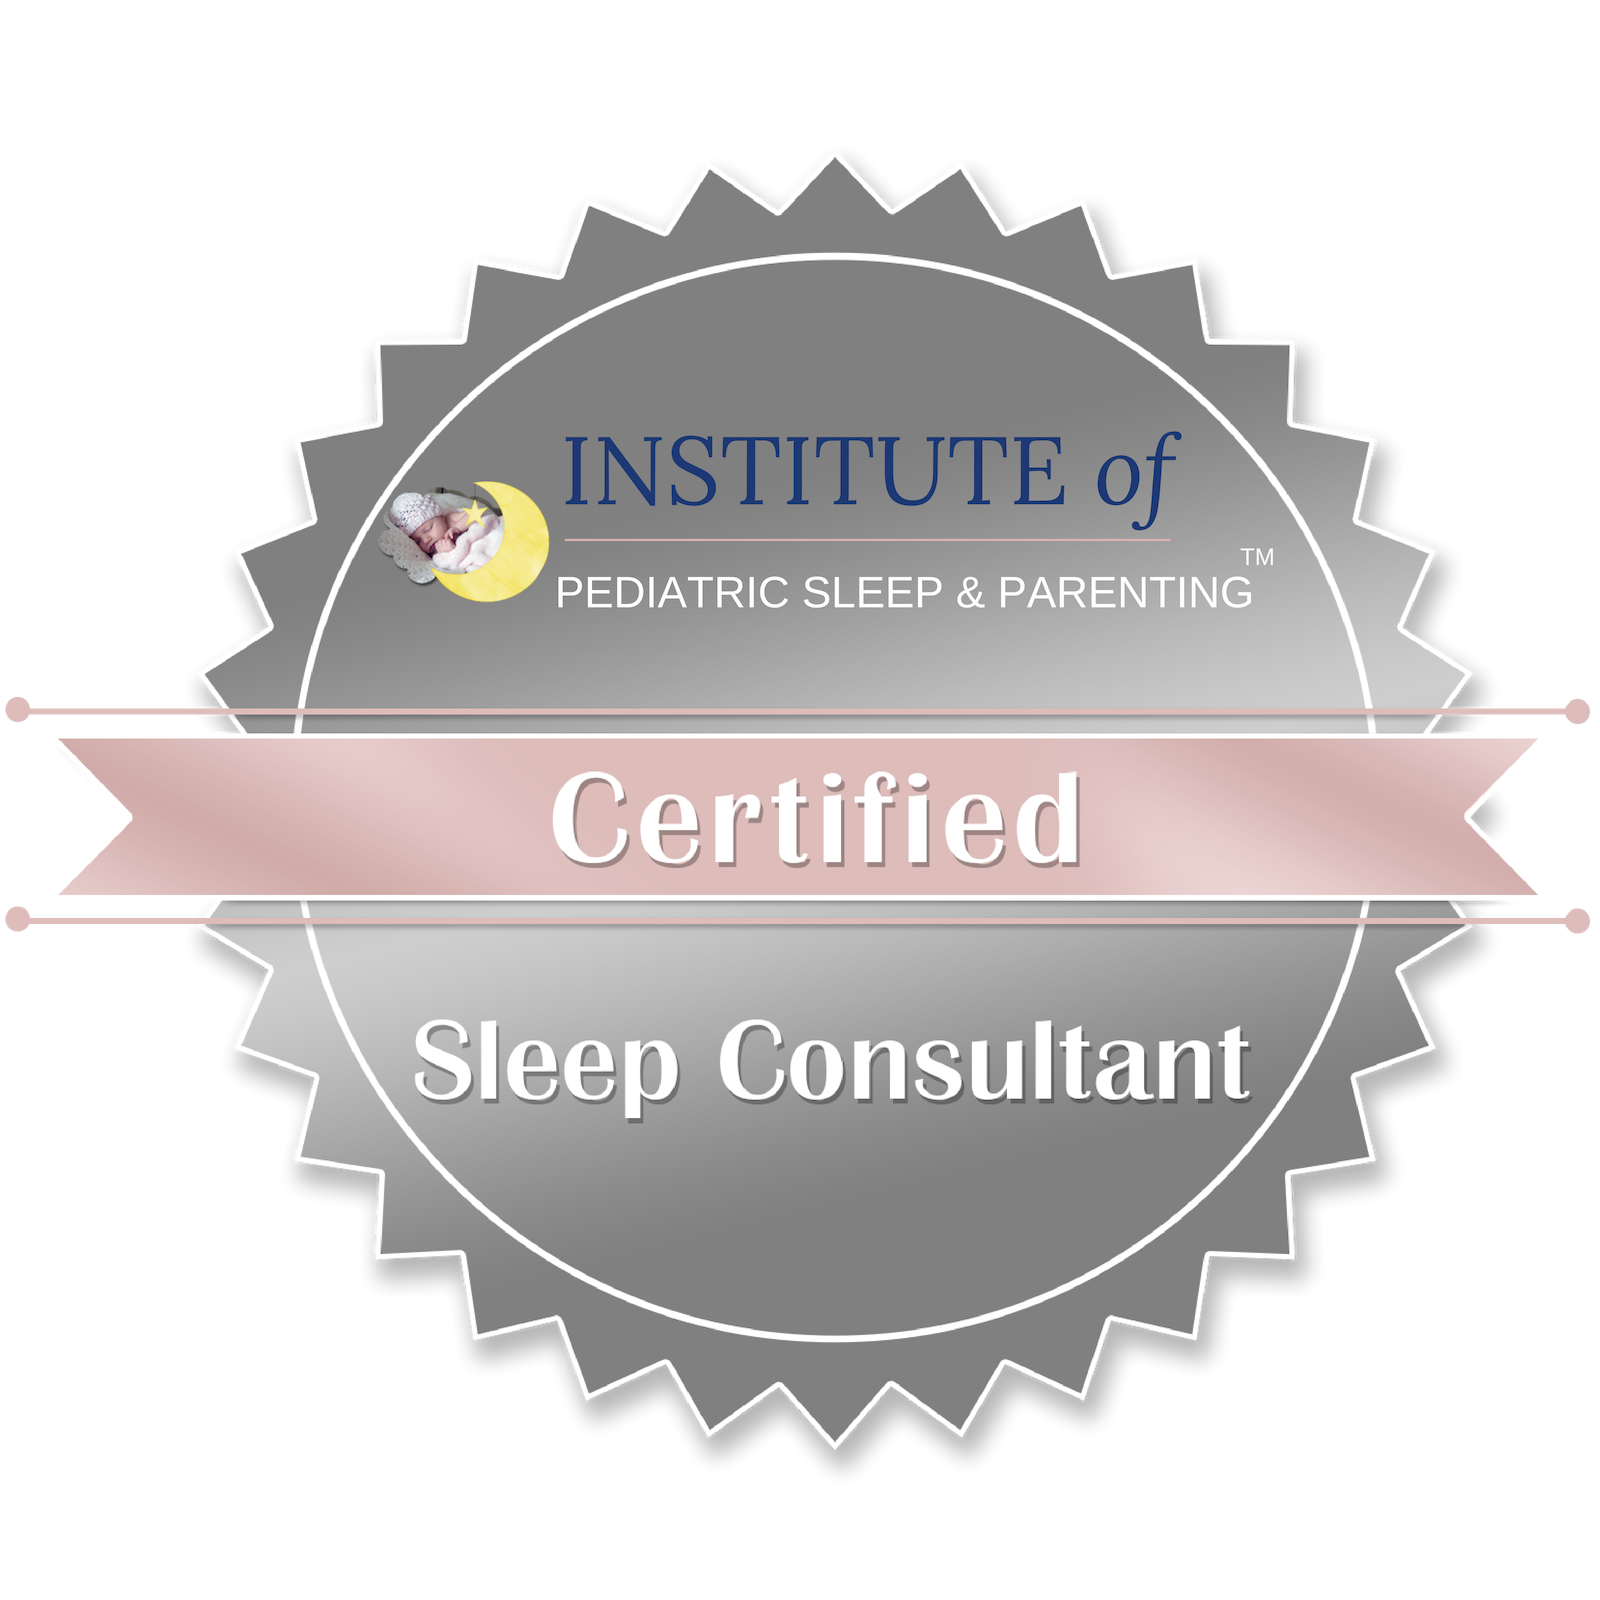 Institute of Pediatric Sleep and Parenting Certification Badge